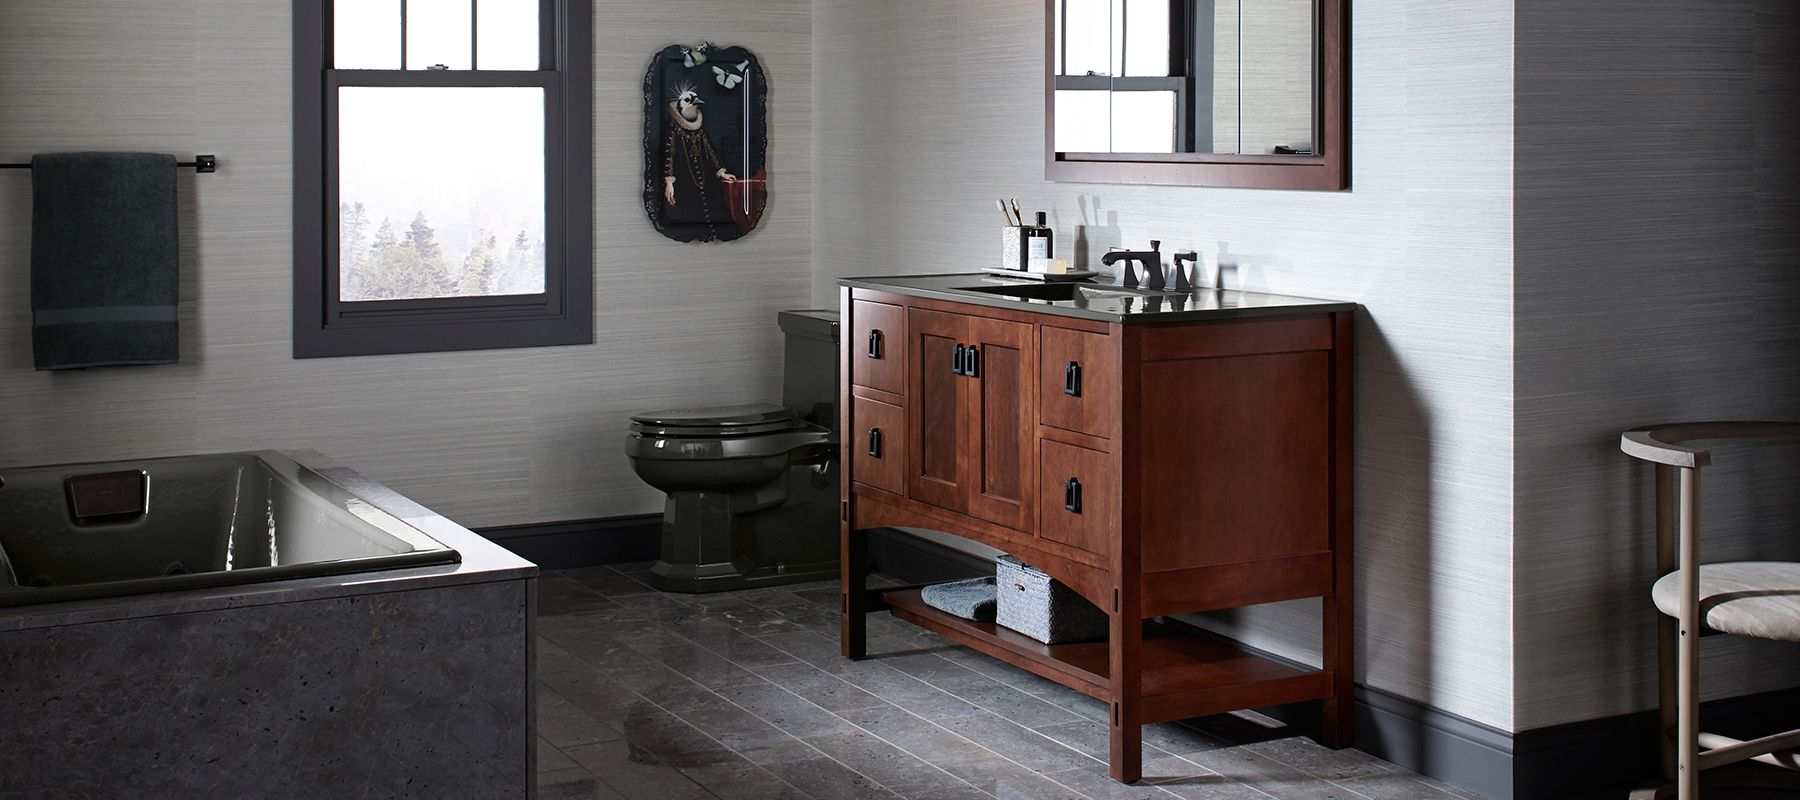 bathroom sink cabinets for small bathrooms. bathroom storage \u0026 styling ideas sink cabinets for small bathrooms